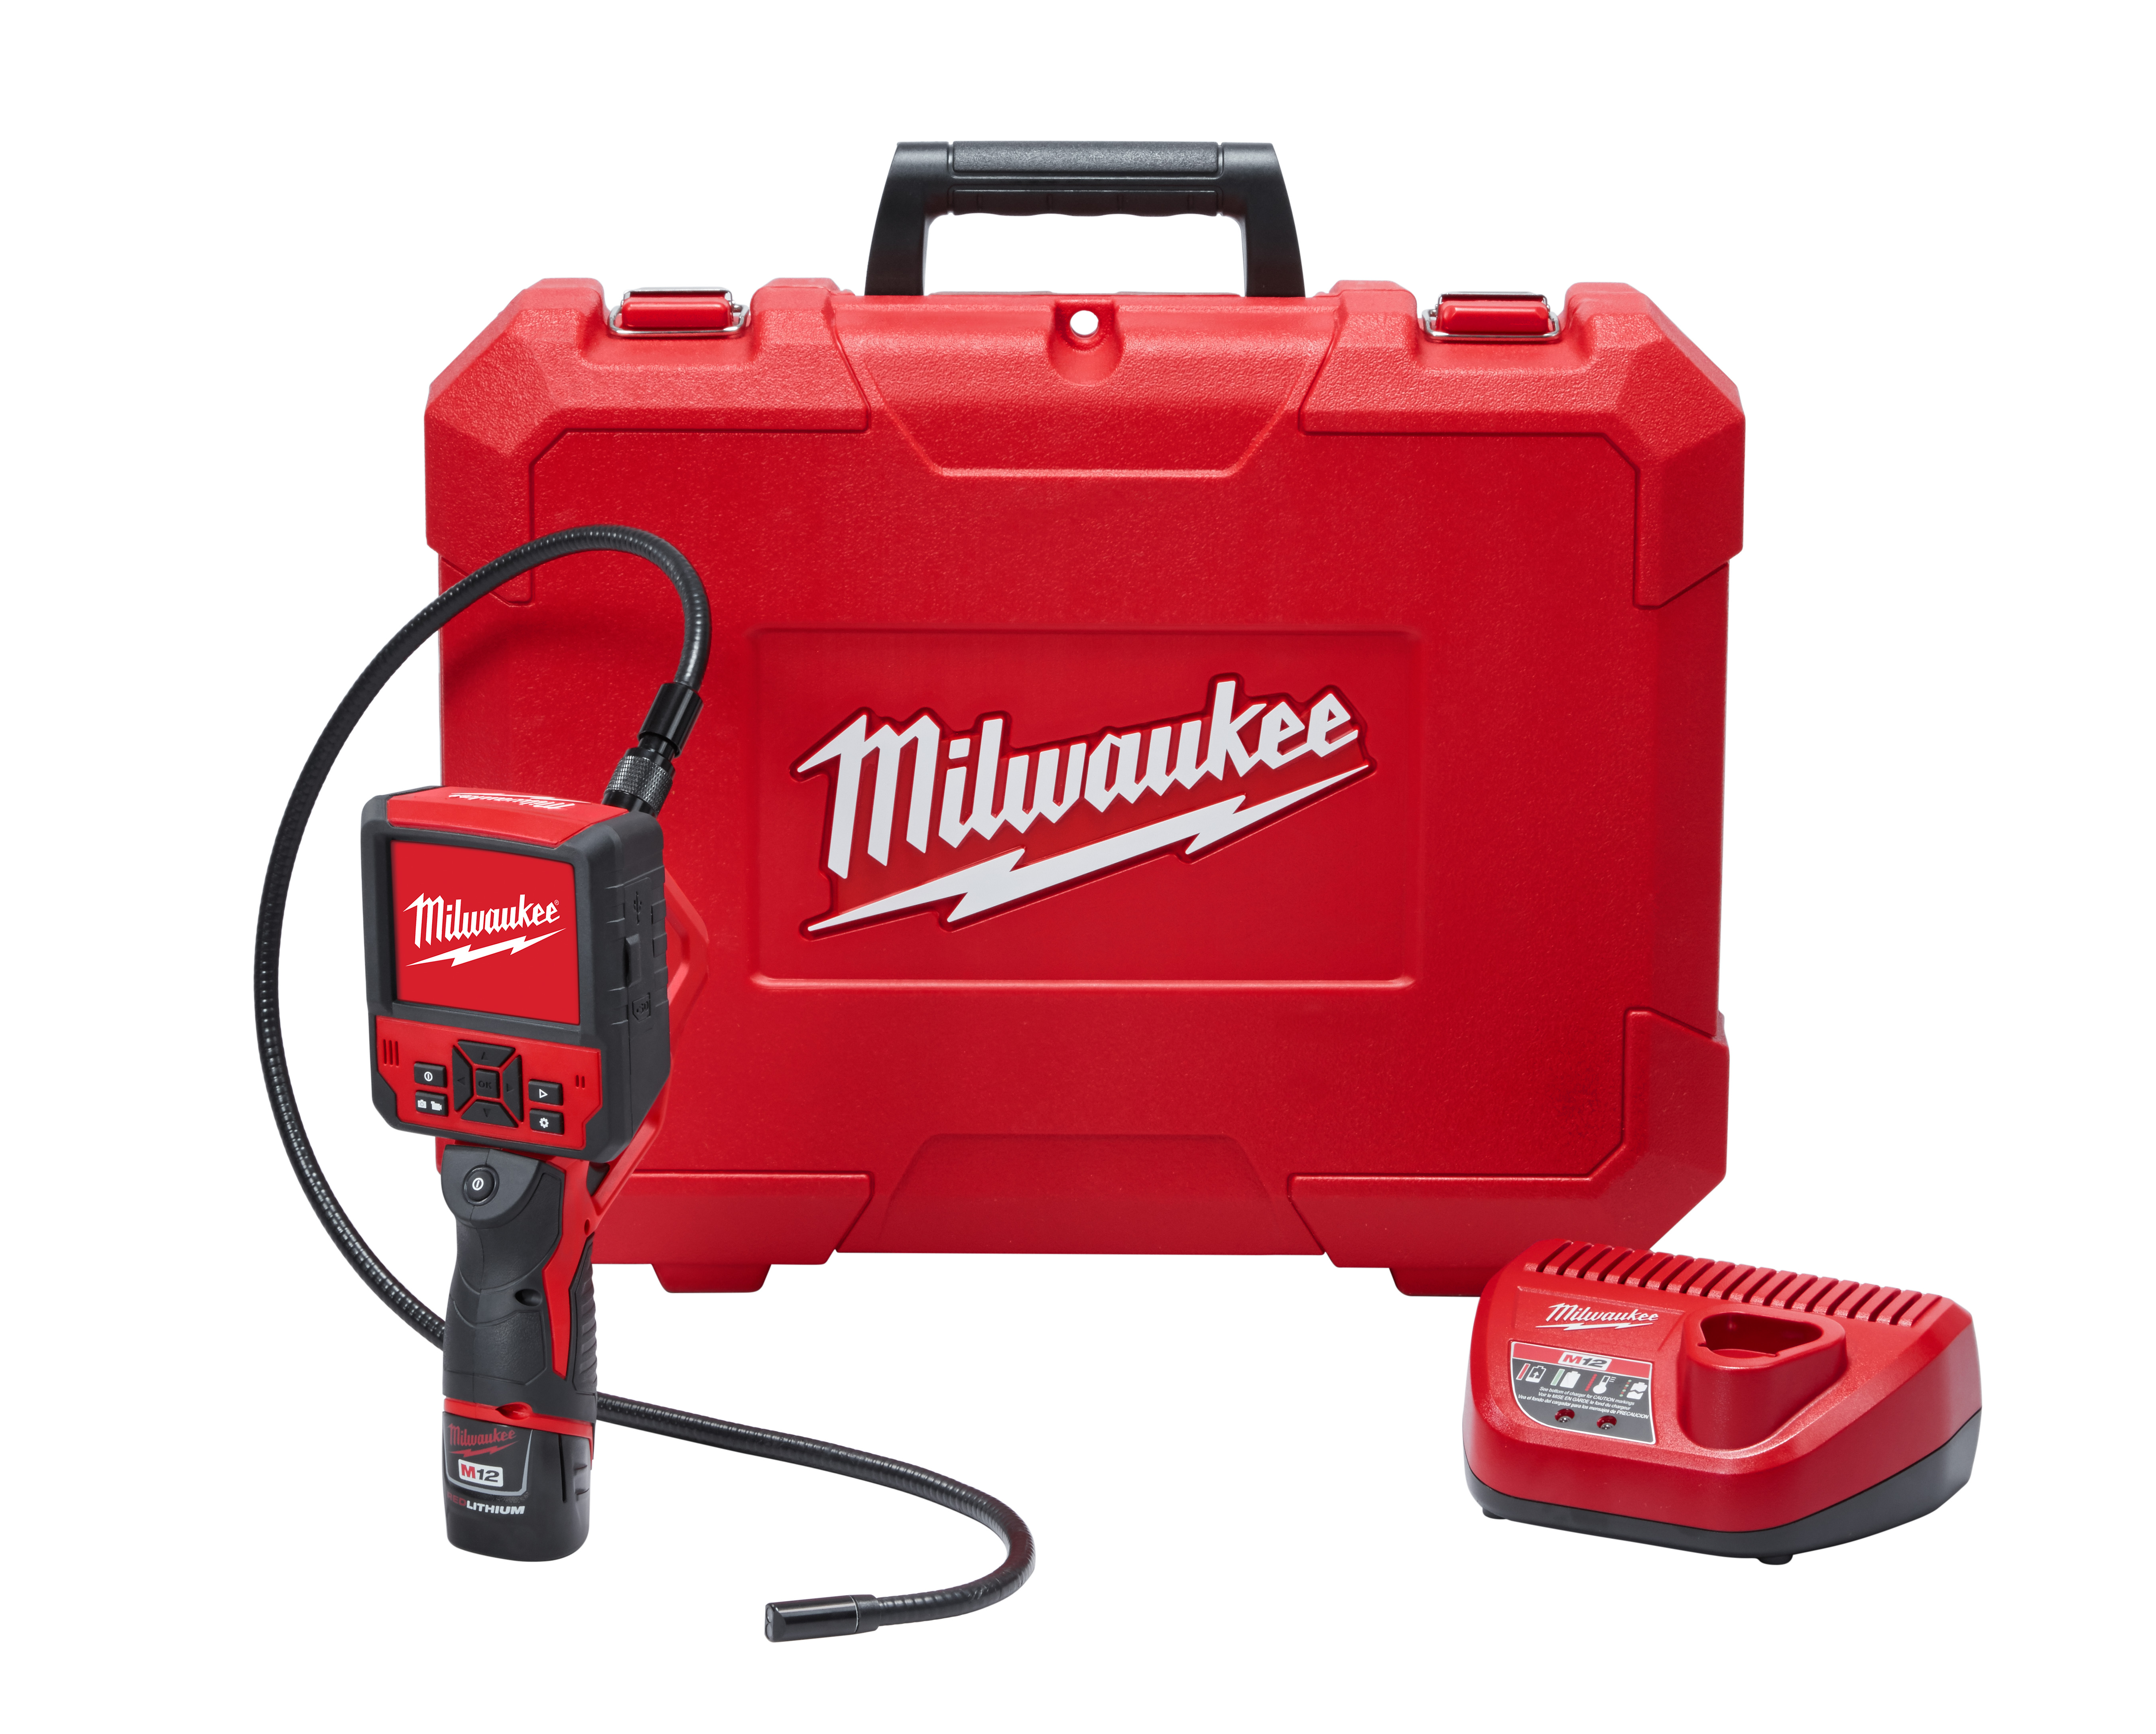 Milwaukee® M12™ 2315-21 M-Spector Flex™ Cordless Inspection Camera Cable Kit, 0.49 in Dia x 3 ft L Probe, 3-1/2 in LCD Display, Black/Red